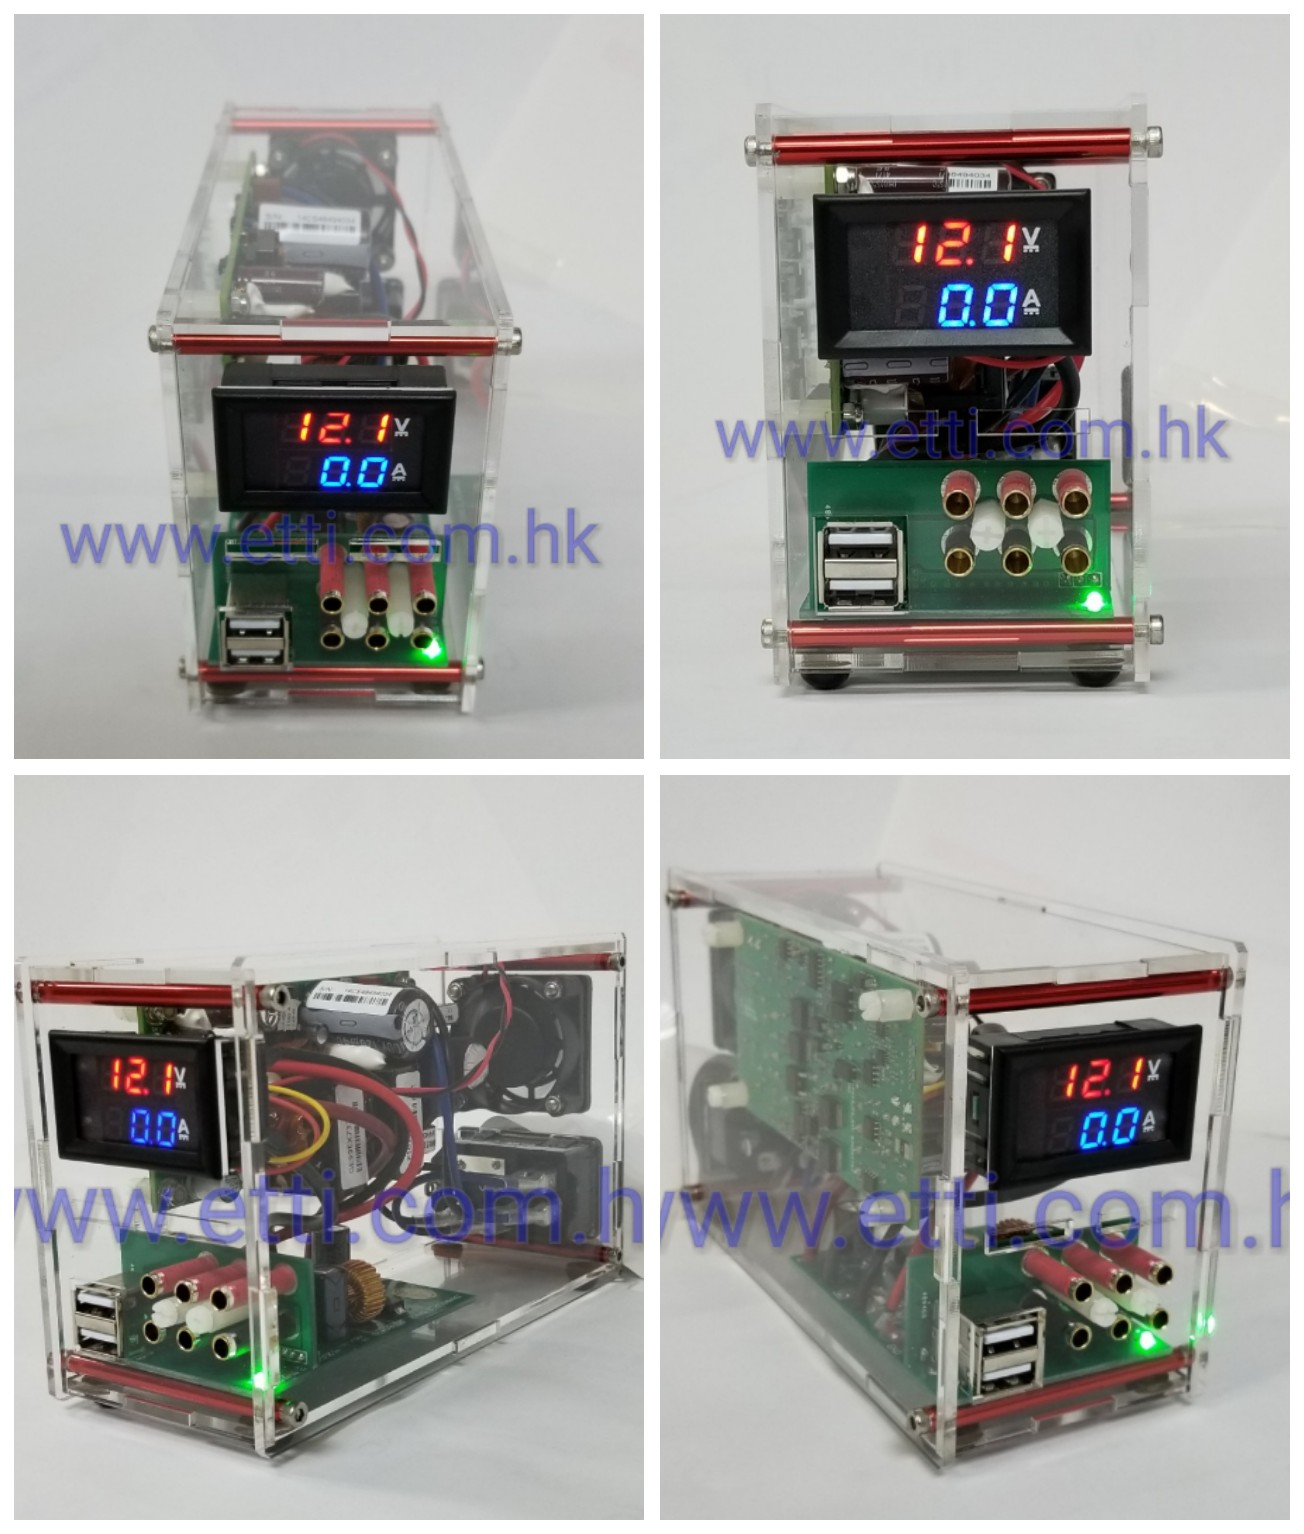 12V/16A, 200W Power Supply (Limited Edition)